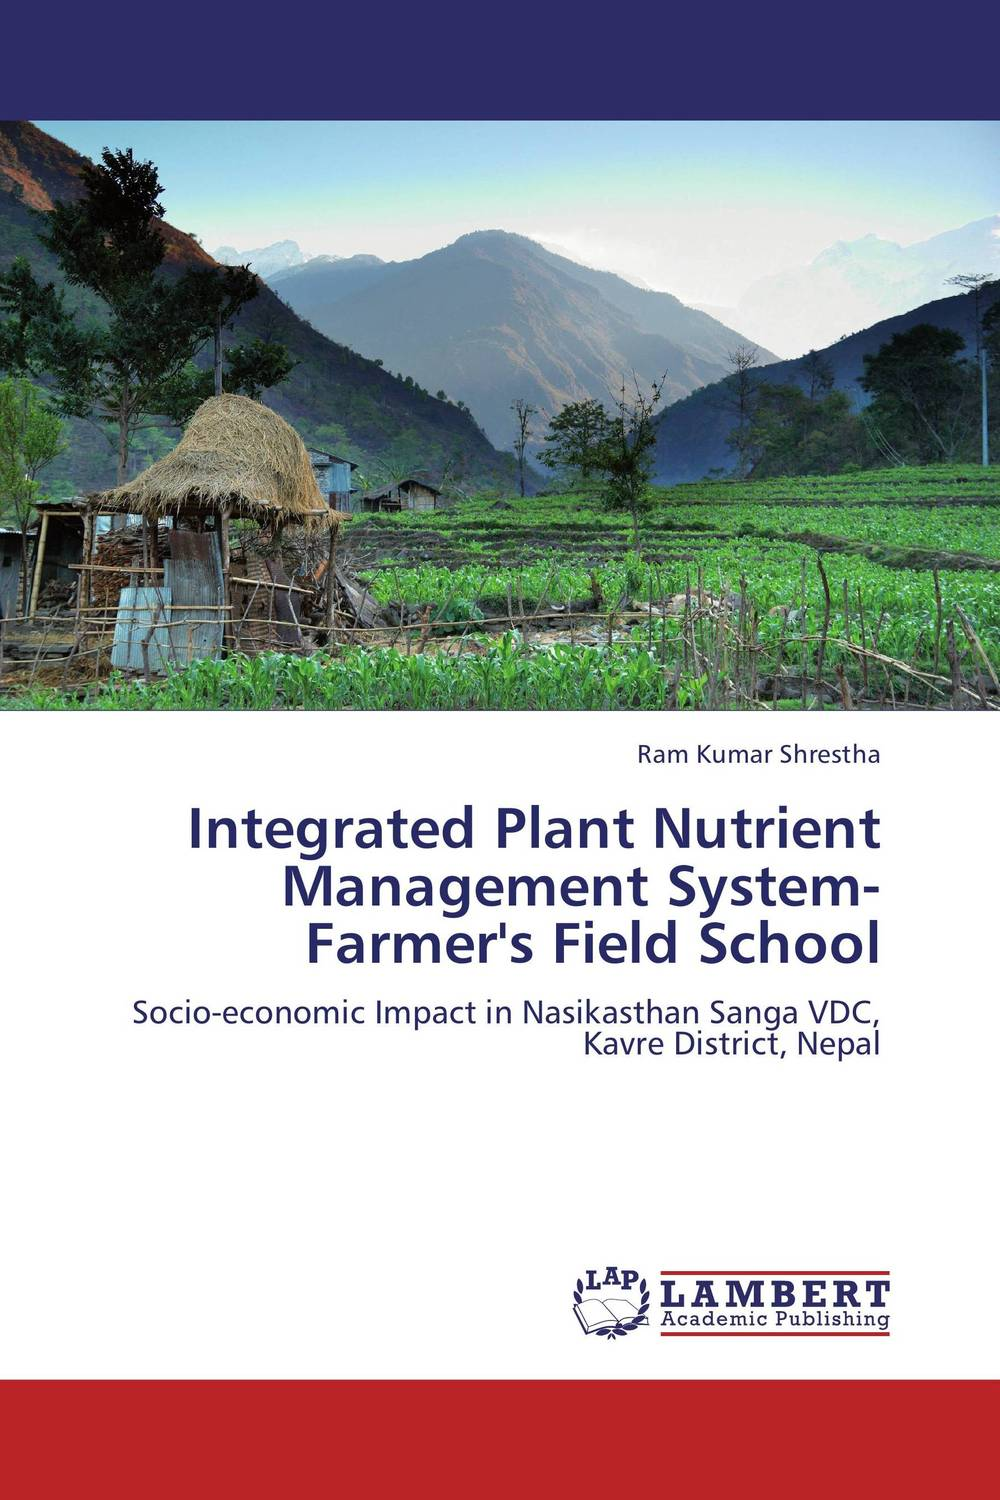 Integrated Plant Nutrient Management System-Farmer's Field School farmers response to integrated plant nutrition system